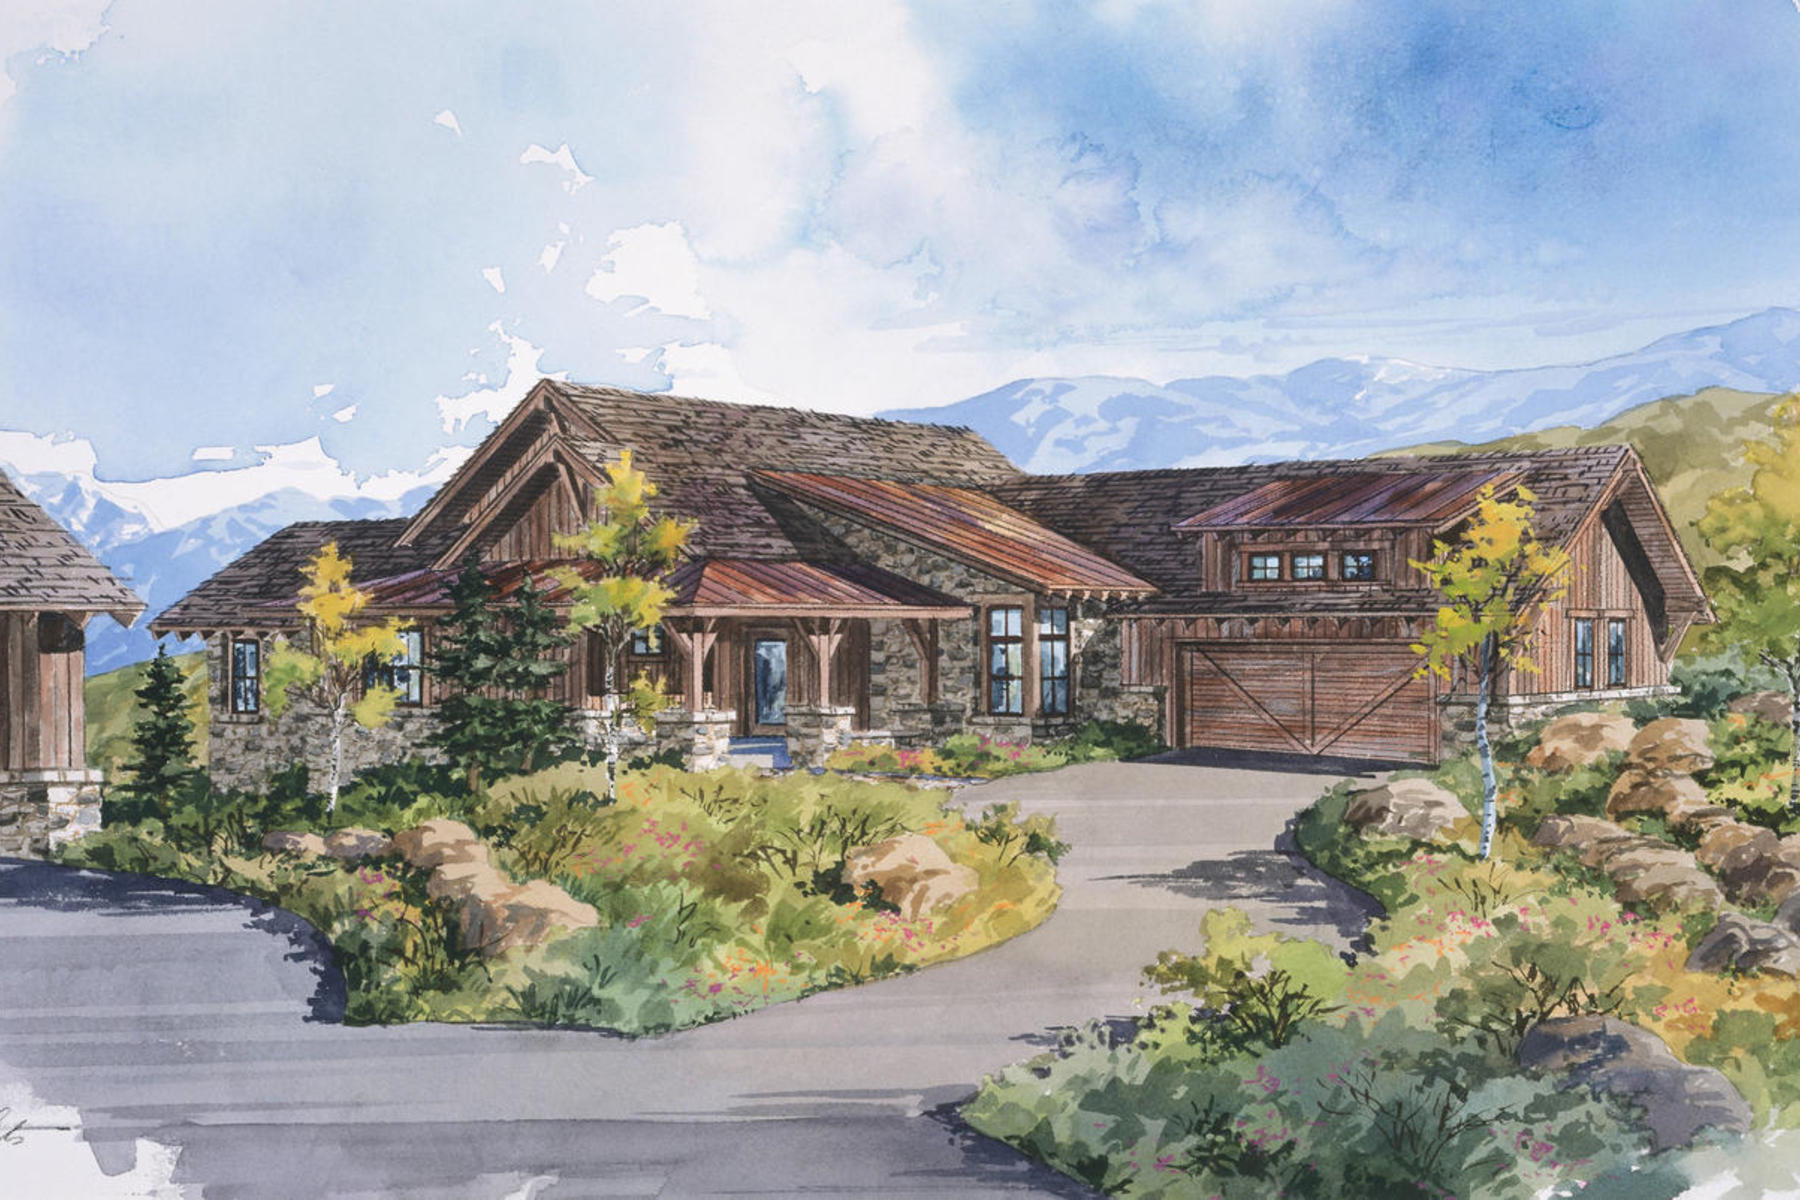 一戸建て のために 売買 アット Park City Cabin in Promontory A Private Mountain Golf Recreational Community 3809 Cynthia Cir Lot 24 Park City, ユタ, 84098 アメリカ合衆国